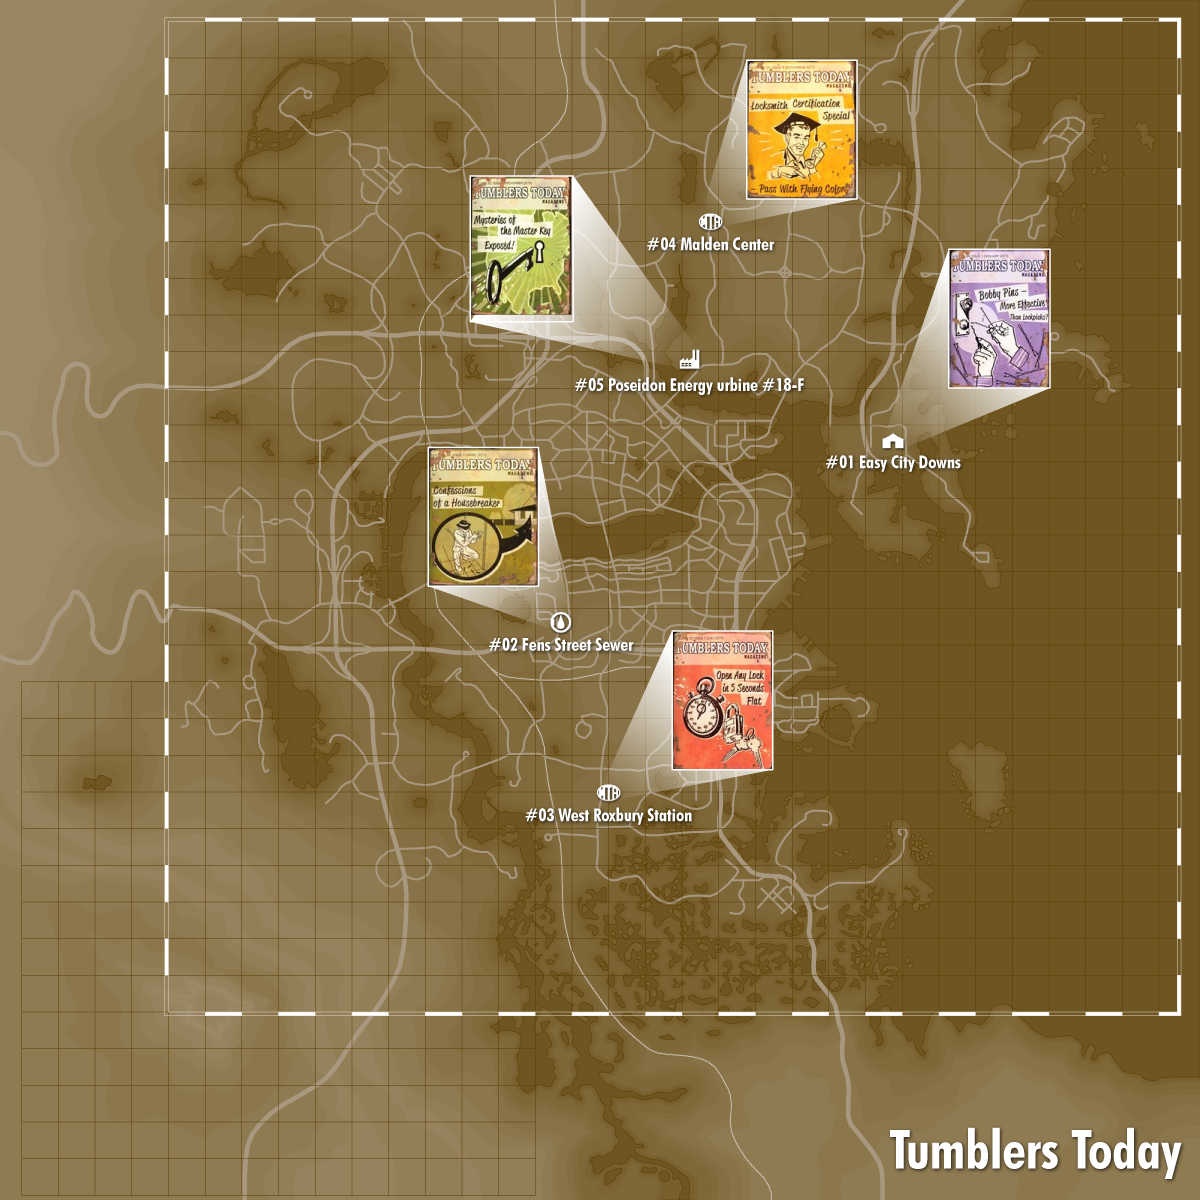 Tumblers Today Locations Fallout 4 Magazines Fallout 4 Map Fallout 4 Locations